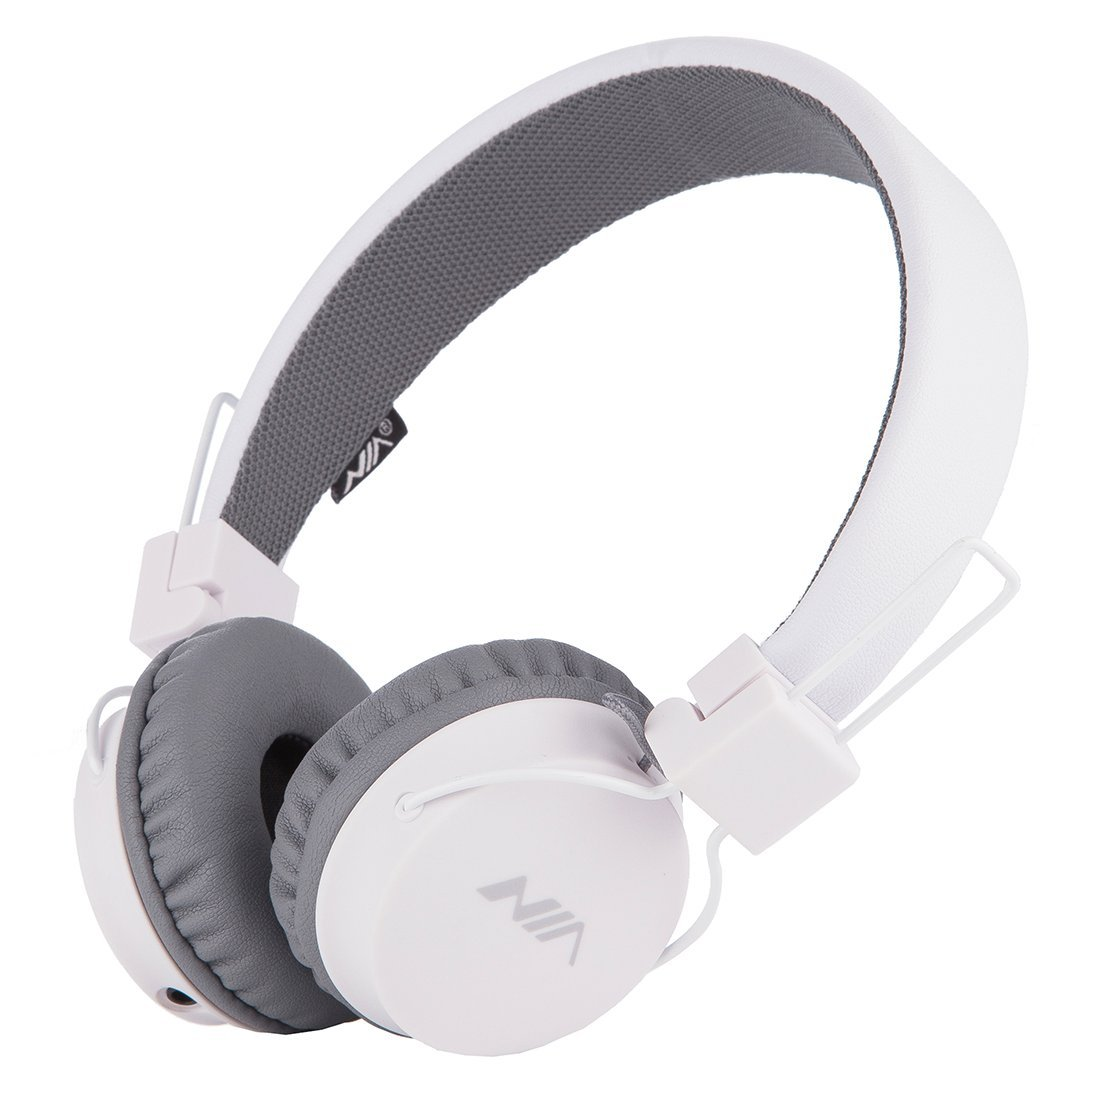 SODEE Folding Stereo Wired Headphones For Kids,Girls Headphones,Boys Headphone,In-line Microphone Remote Control Adjustable Over ear Headphone Kids Headsets with Soft Earpads for Cellphones (white)